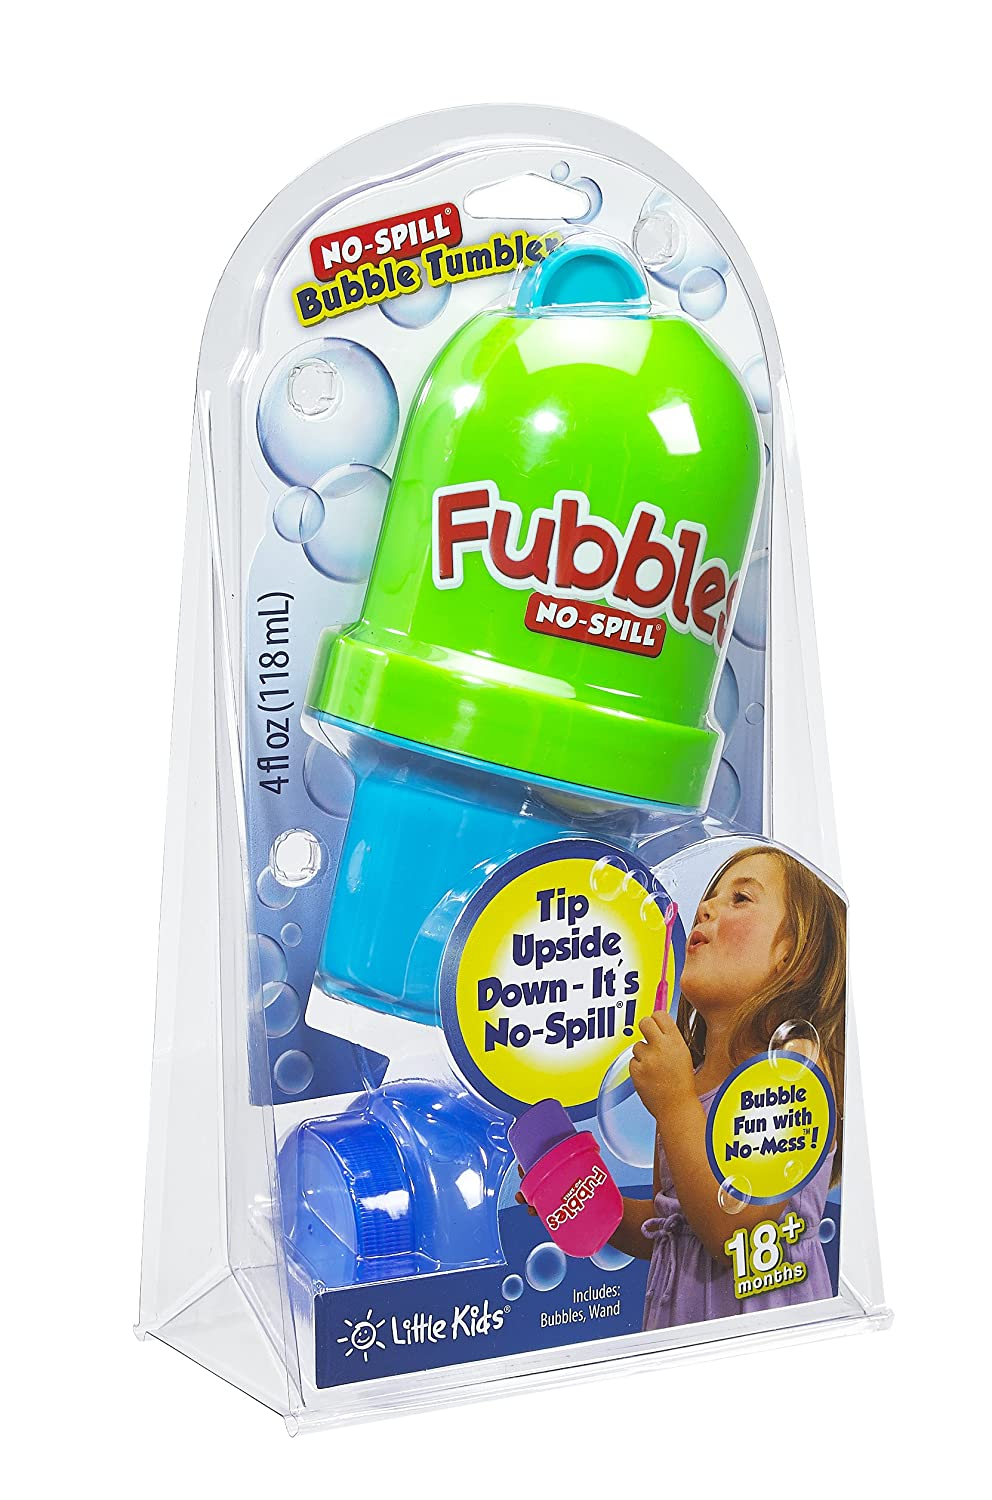 Disney Packing List item, bubbles